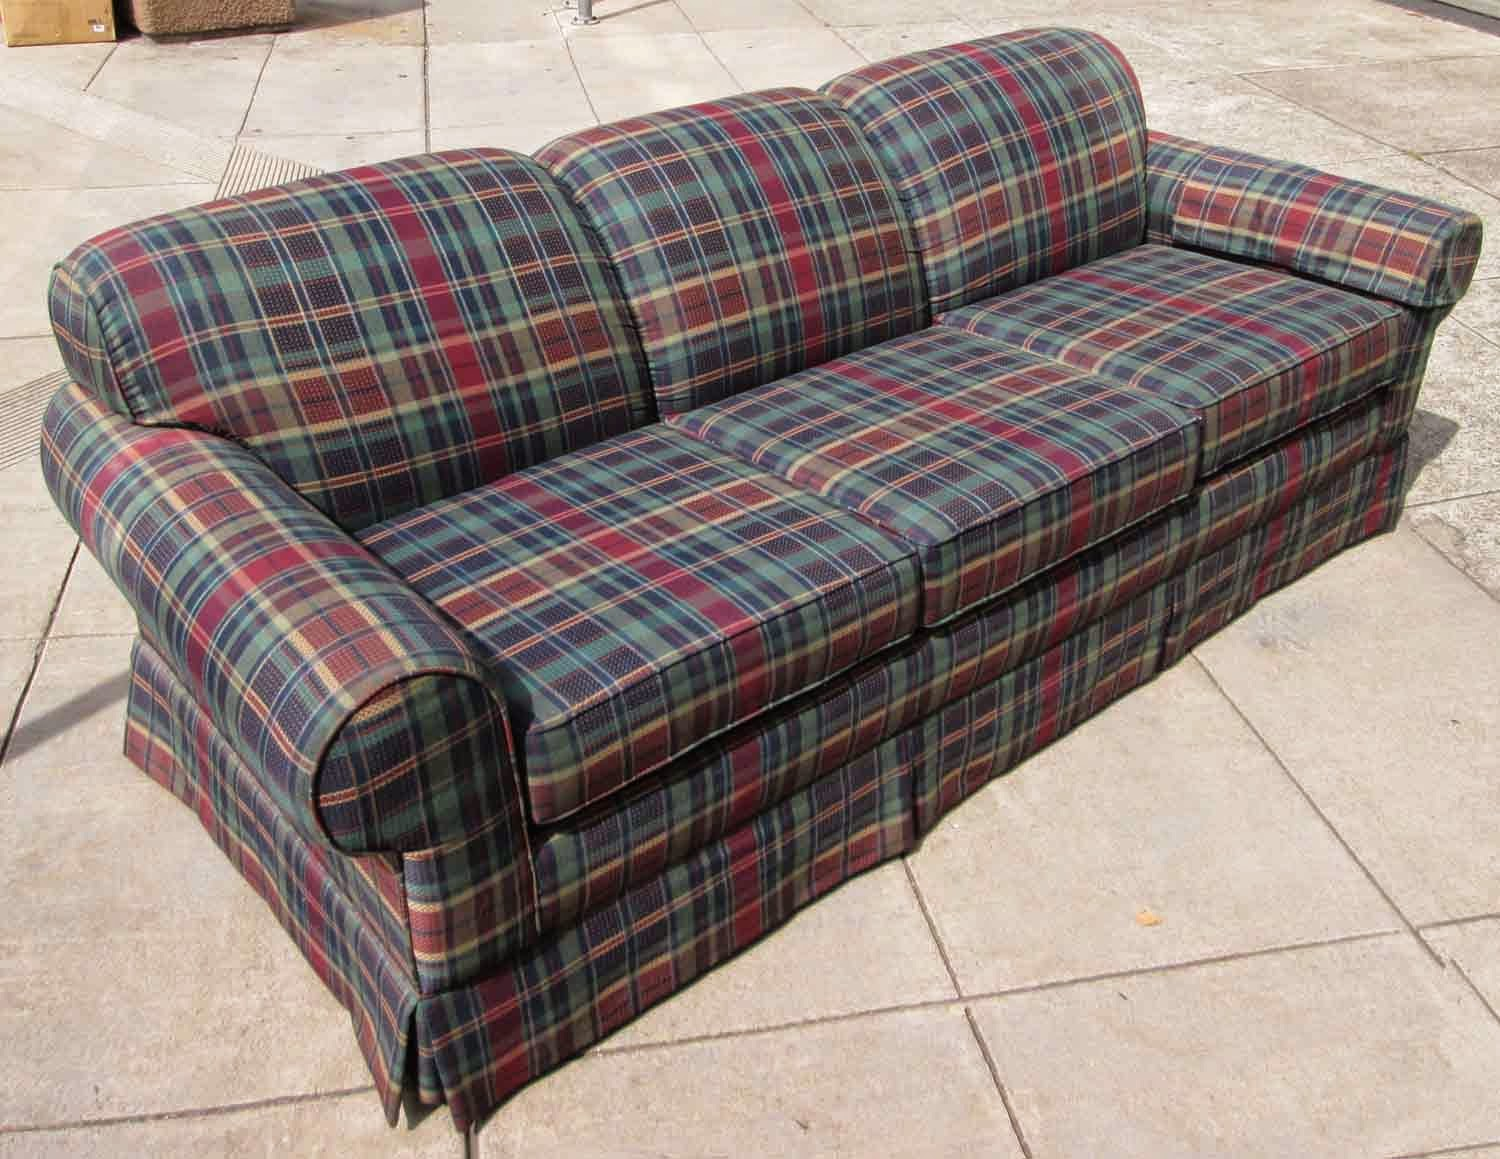 UHURU FURNITURE & COLLECTIBLES: SOLD Mad About Plaid Sofa